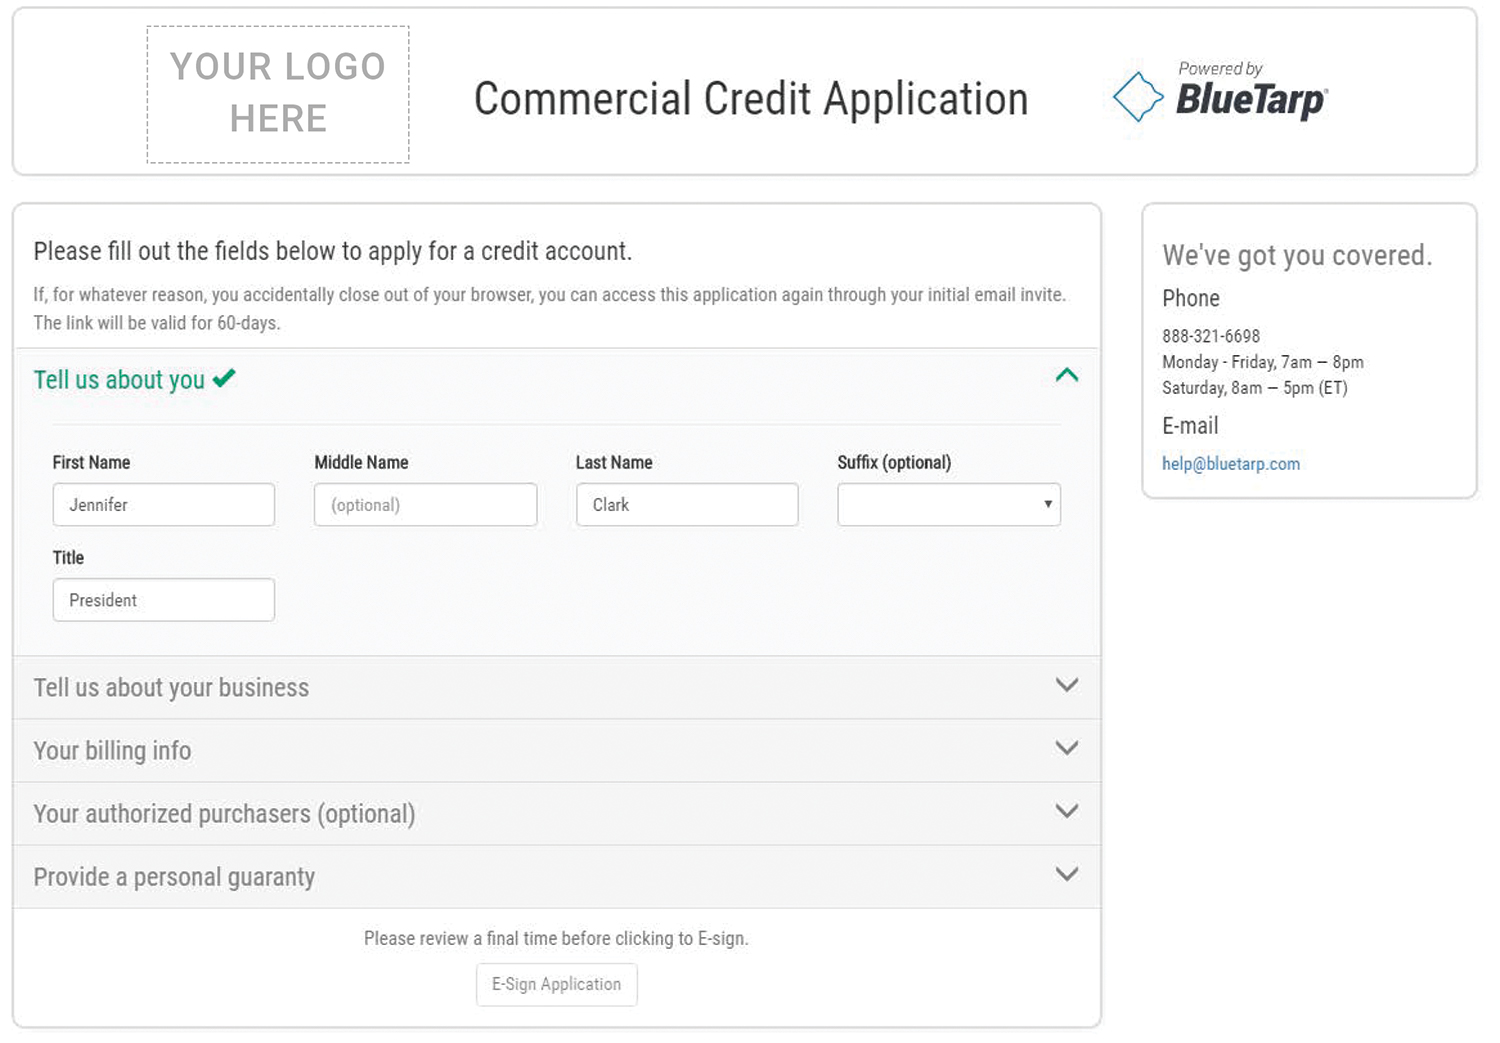 Included is an image example of BlueTarp's online commercial credit application